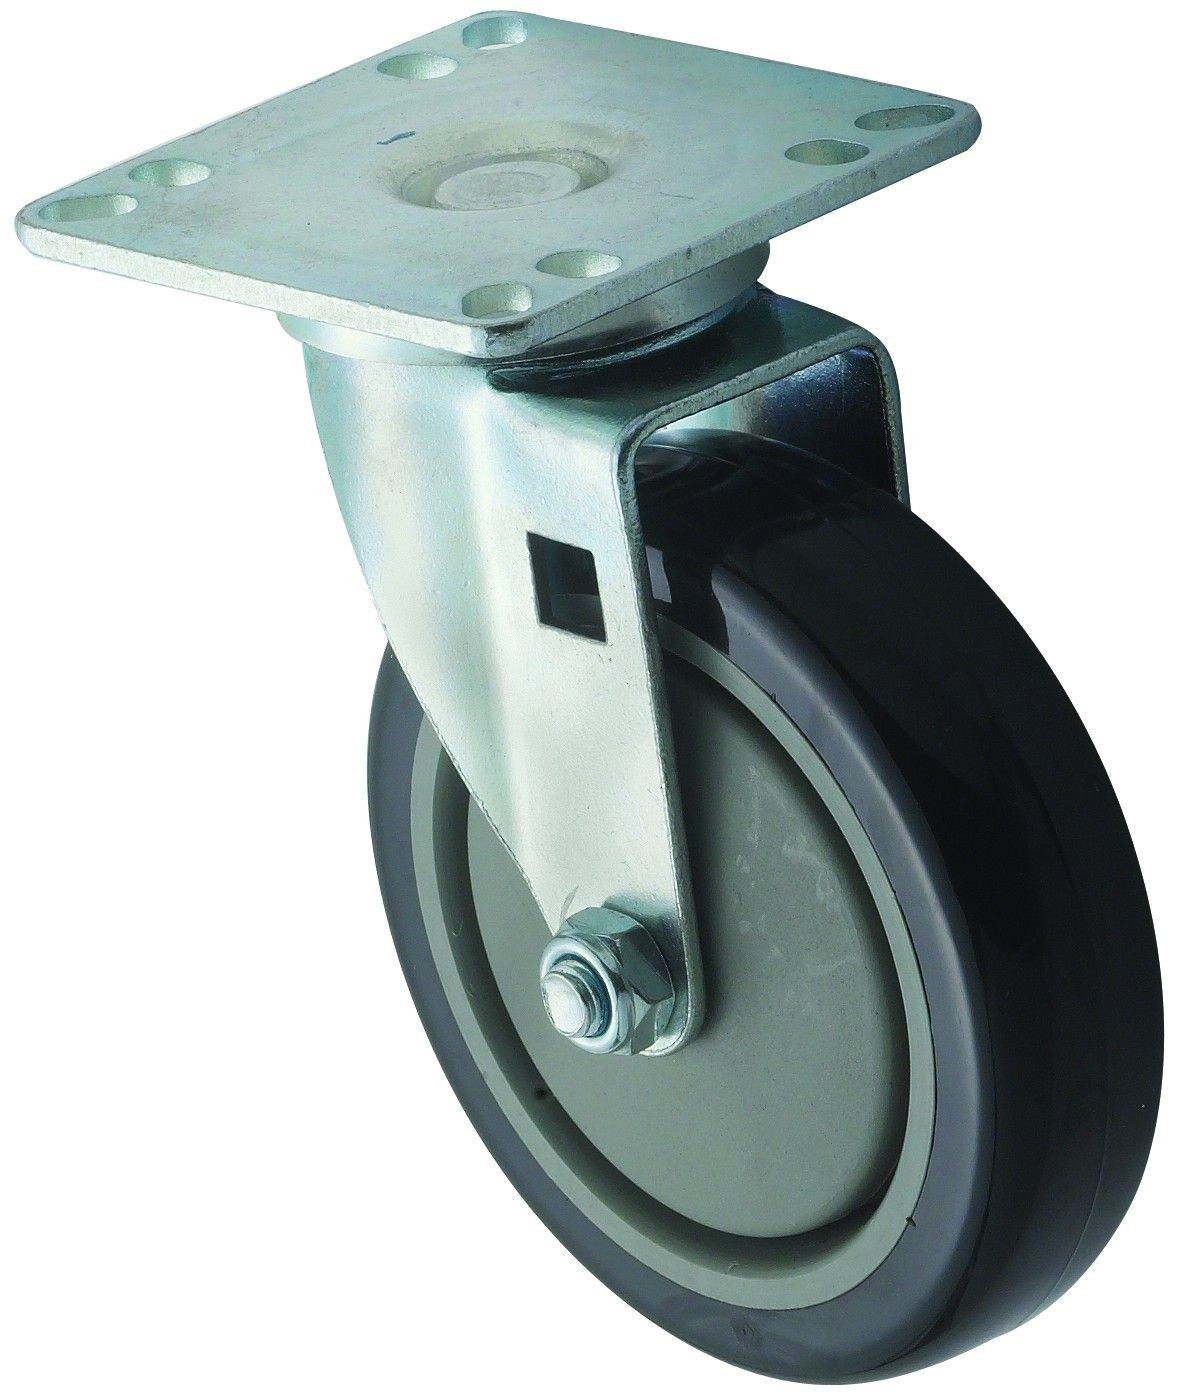 "Winco CT-33 Universal Plate Caster Set 3-1/2"" x 3-1/2"" with 5"" Wheel"